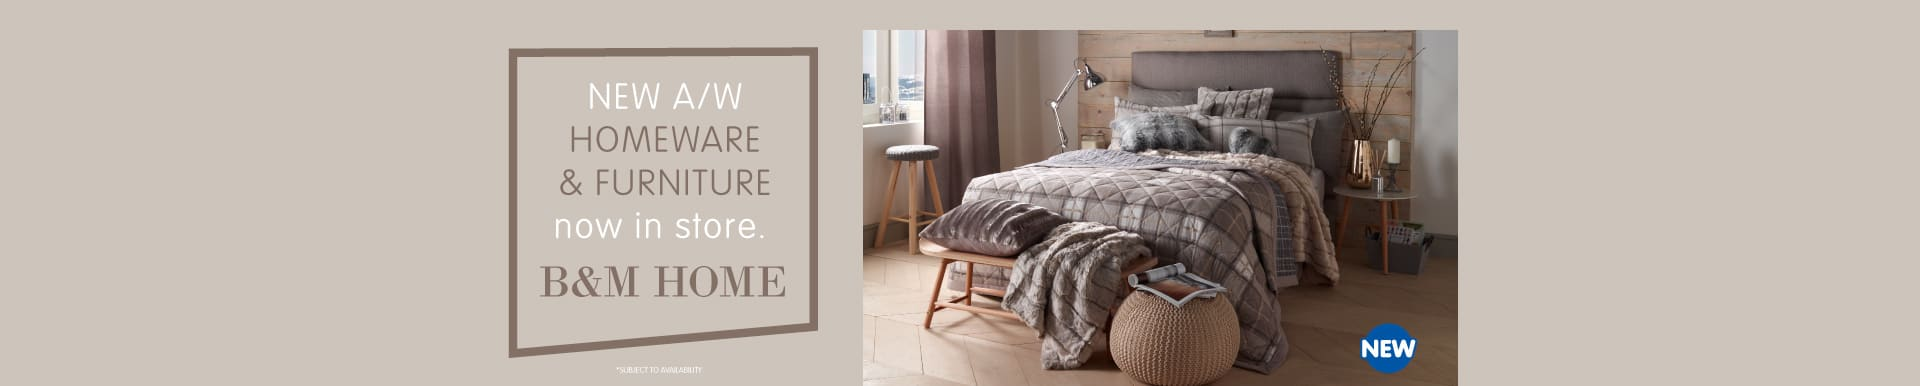 Save on Furniture & Homeware at B&M.